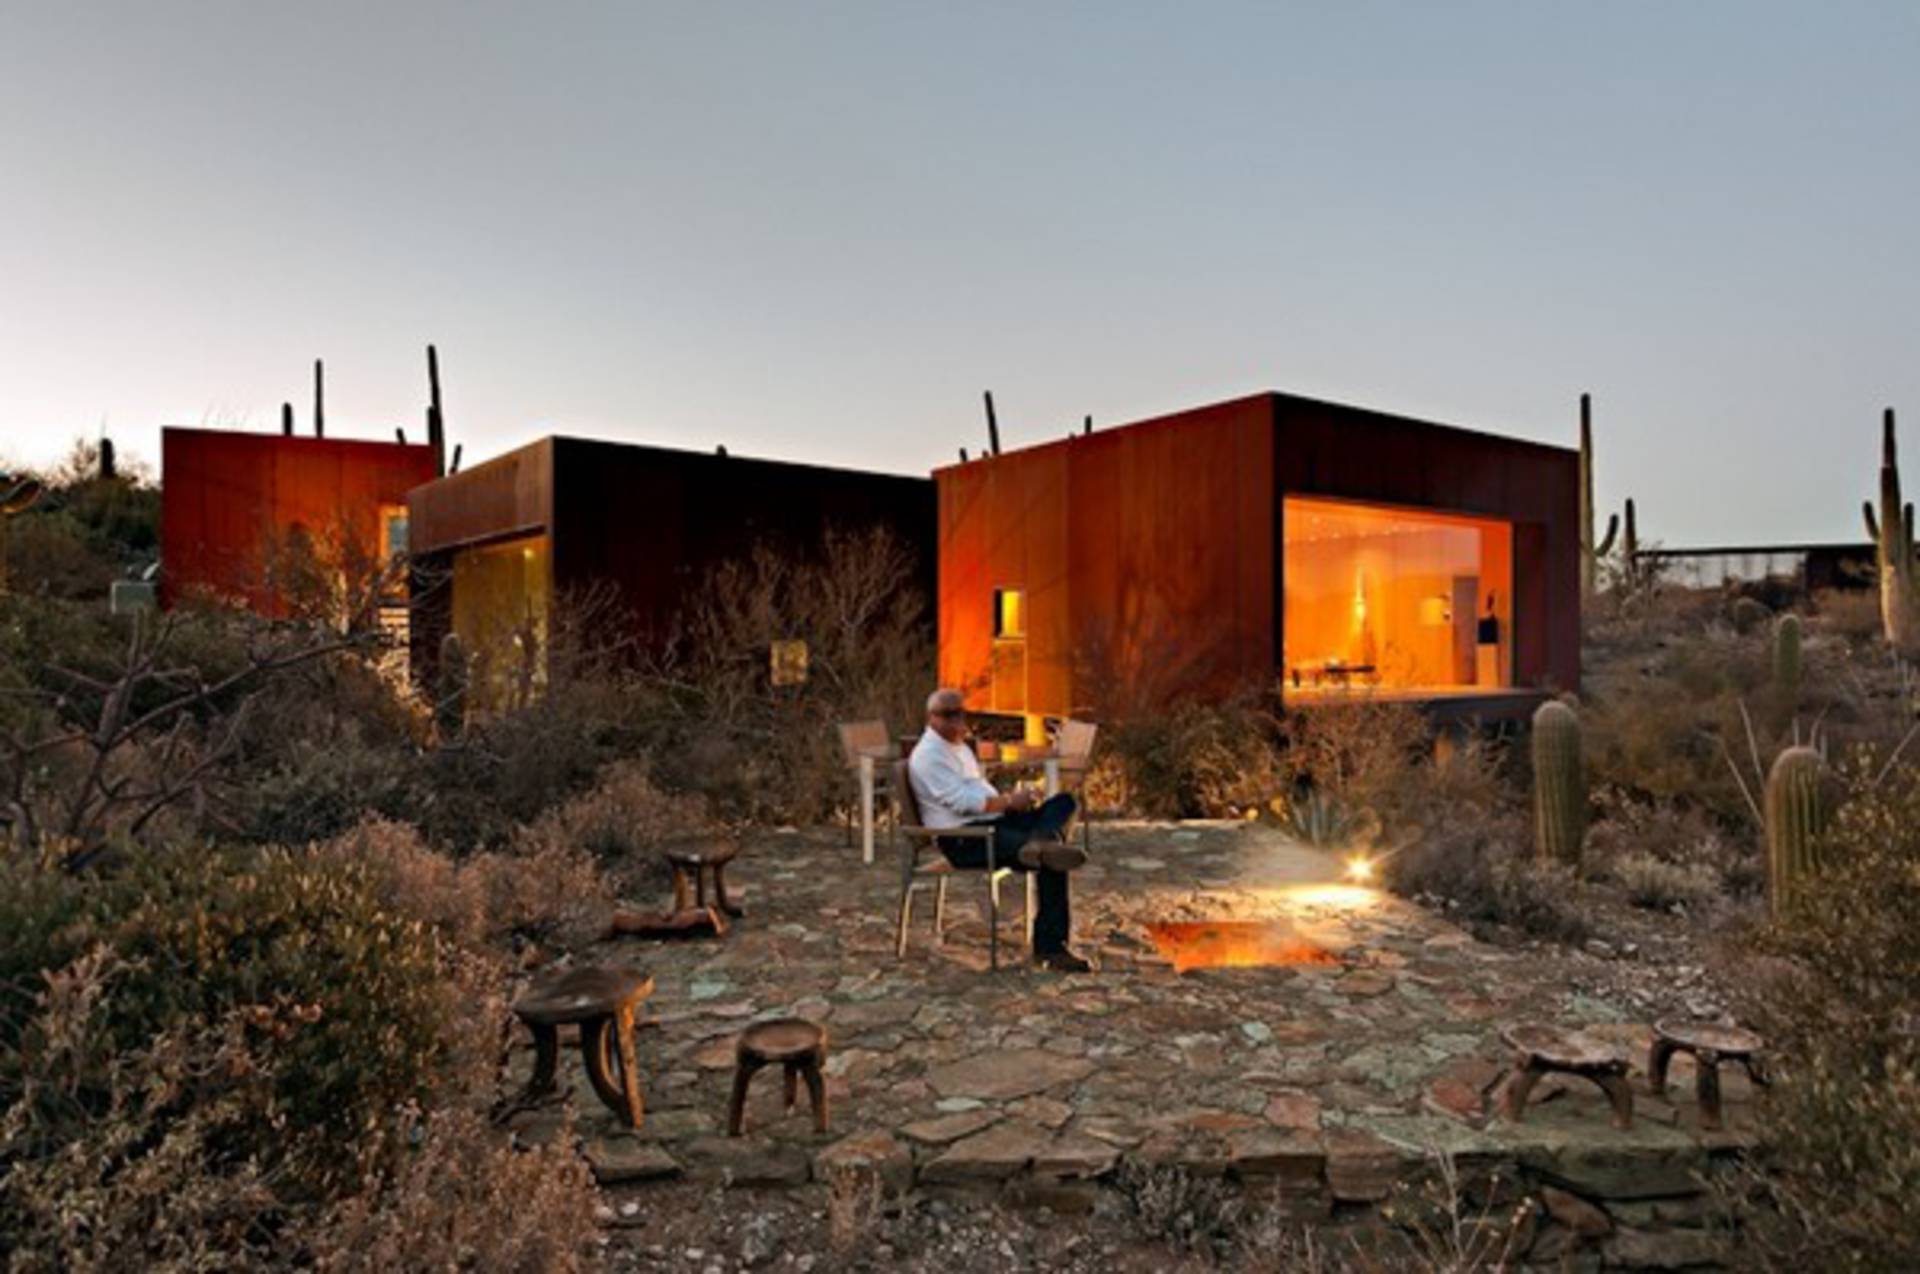 Tranquility And Serenity In Desert Nomad House By Rick Joy